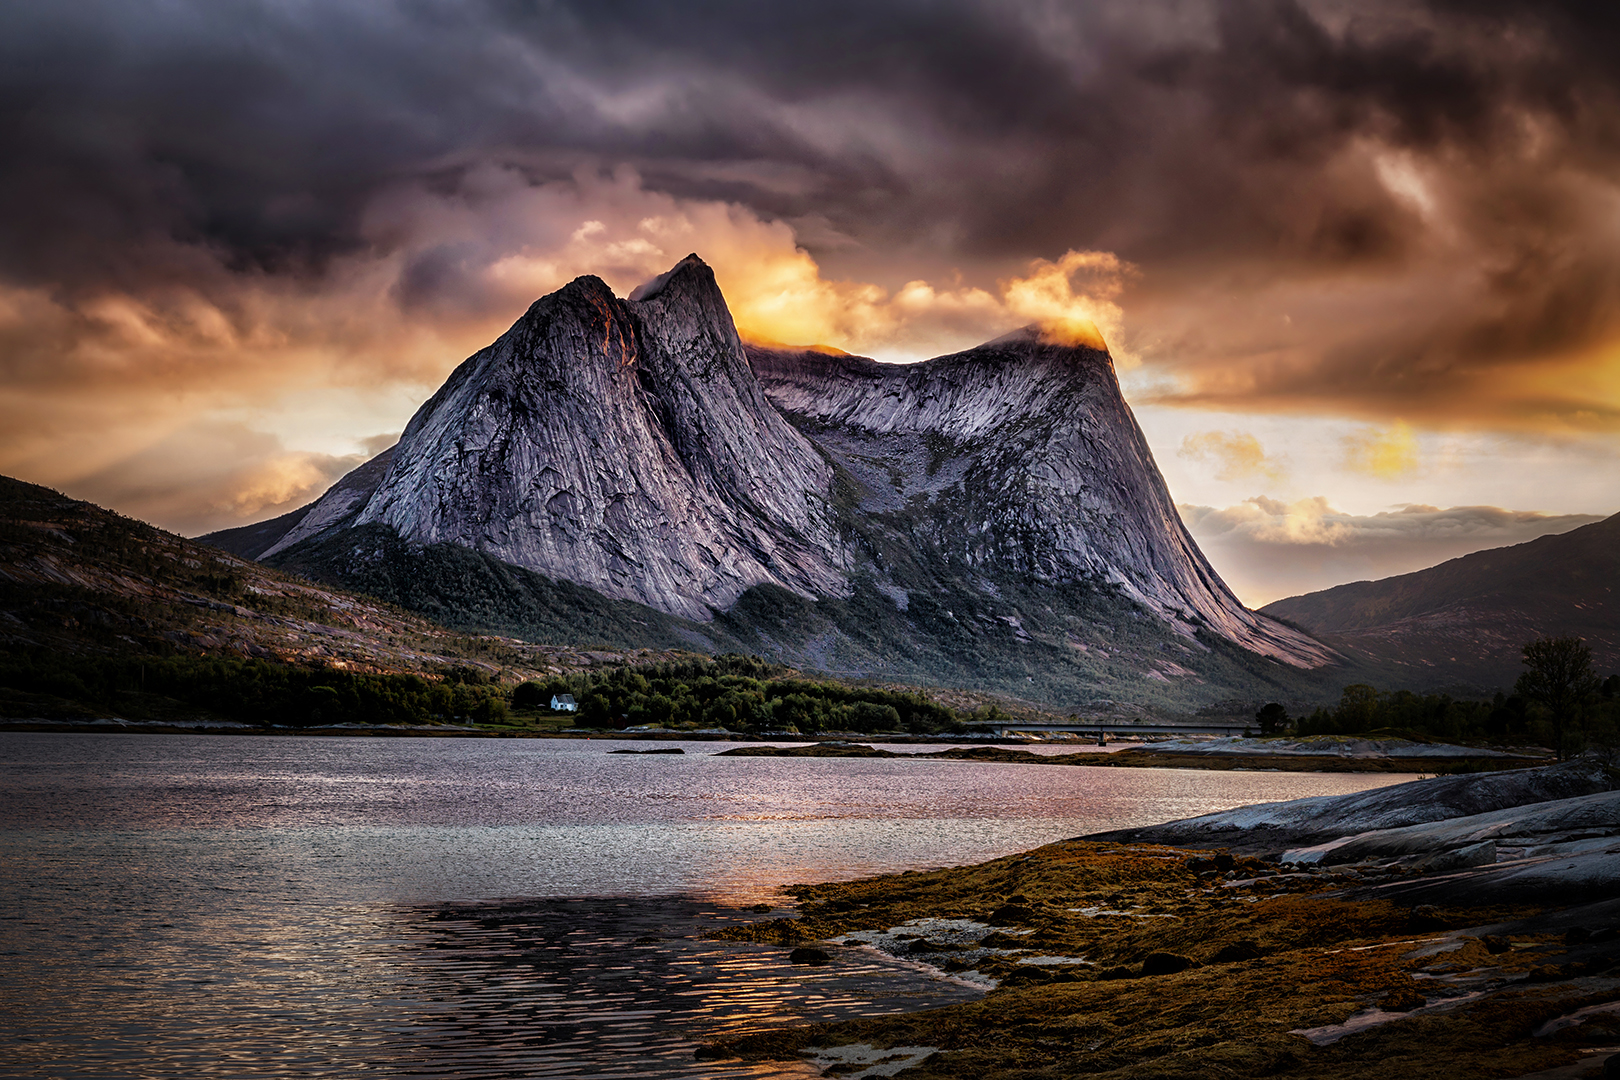 Last light - Norway